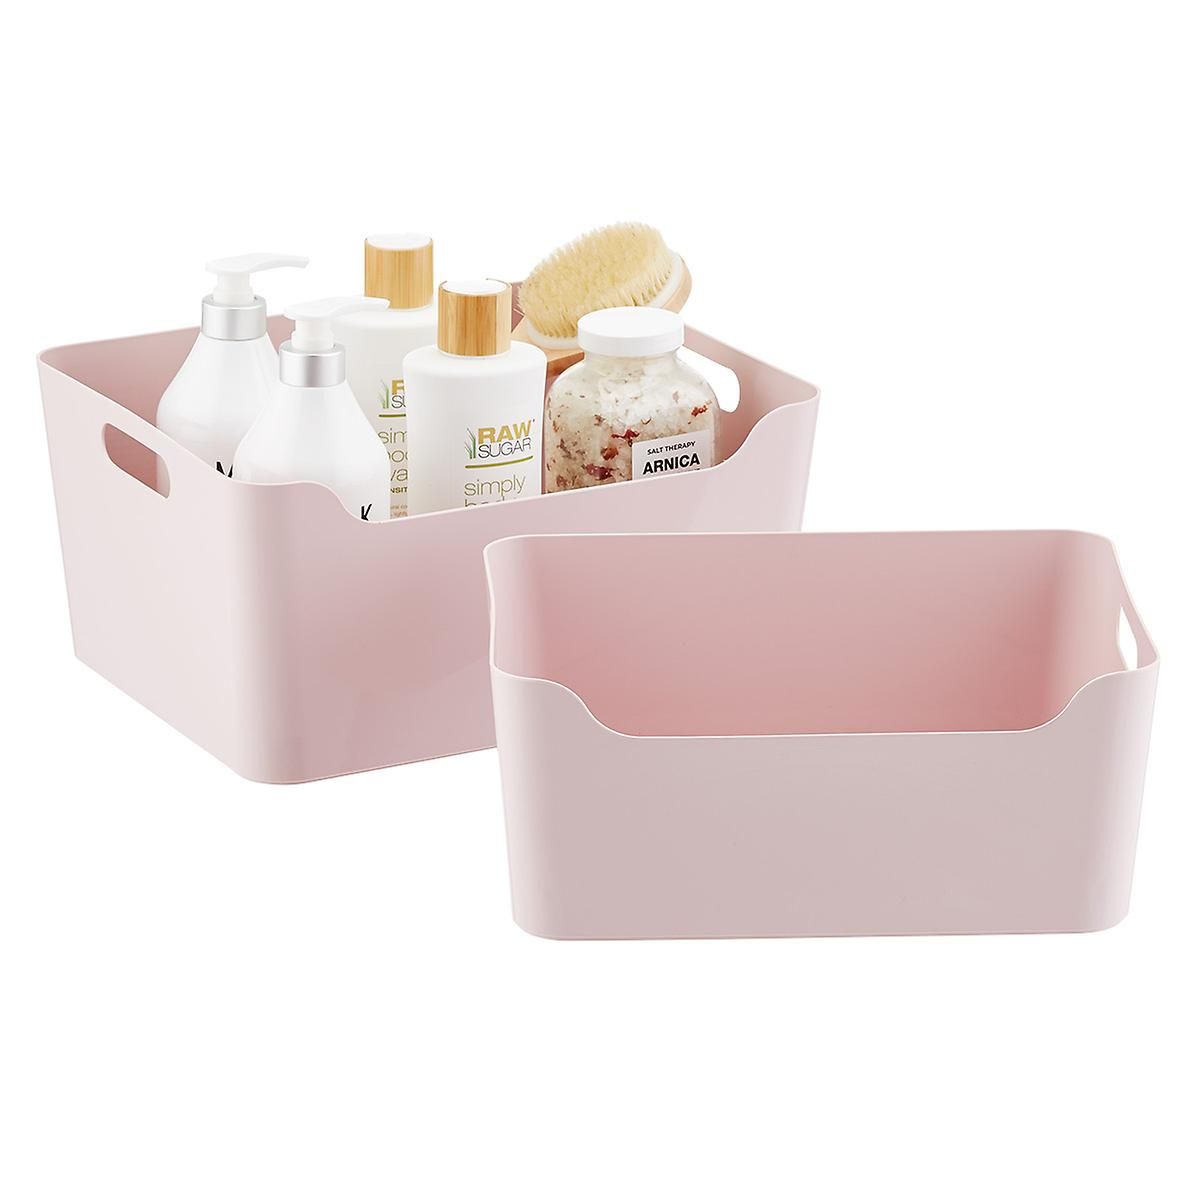 Soft Pink Plastic Storage Bins with Handles